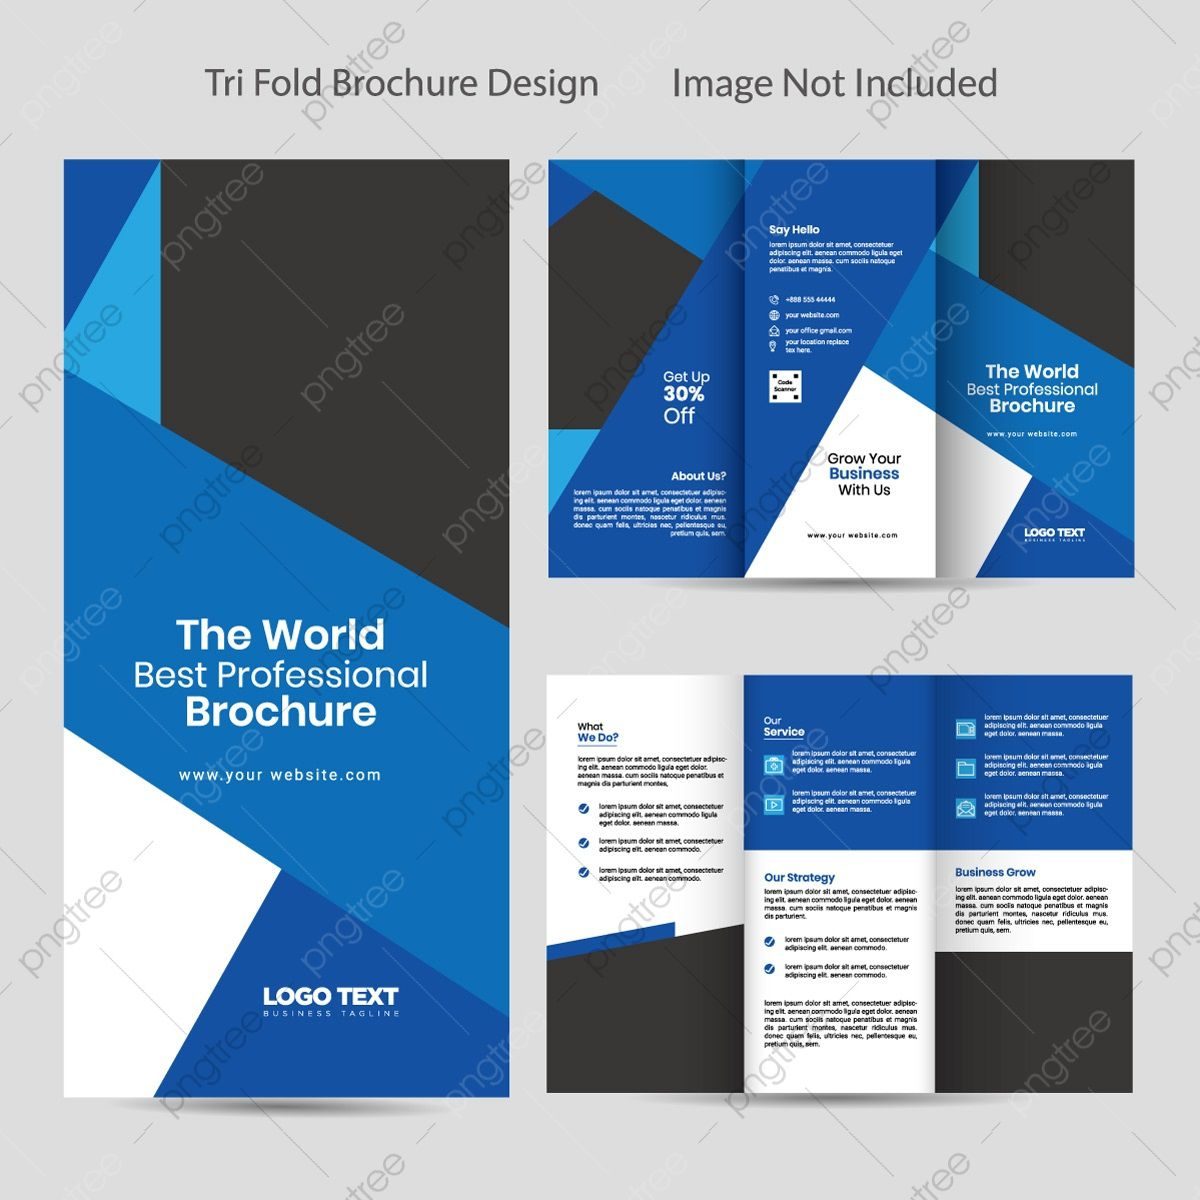 008 Impressive Template For Trifold Brochure High Definition  Tri Fold Indesign A4 Free In Word DownloadFull